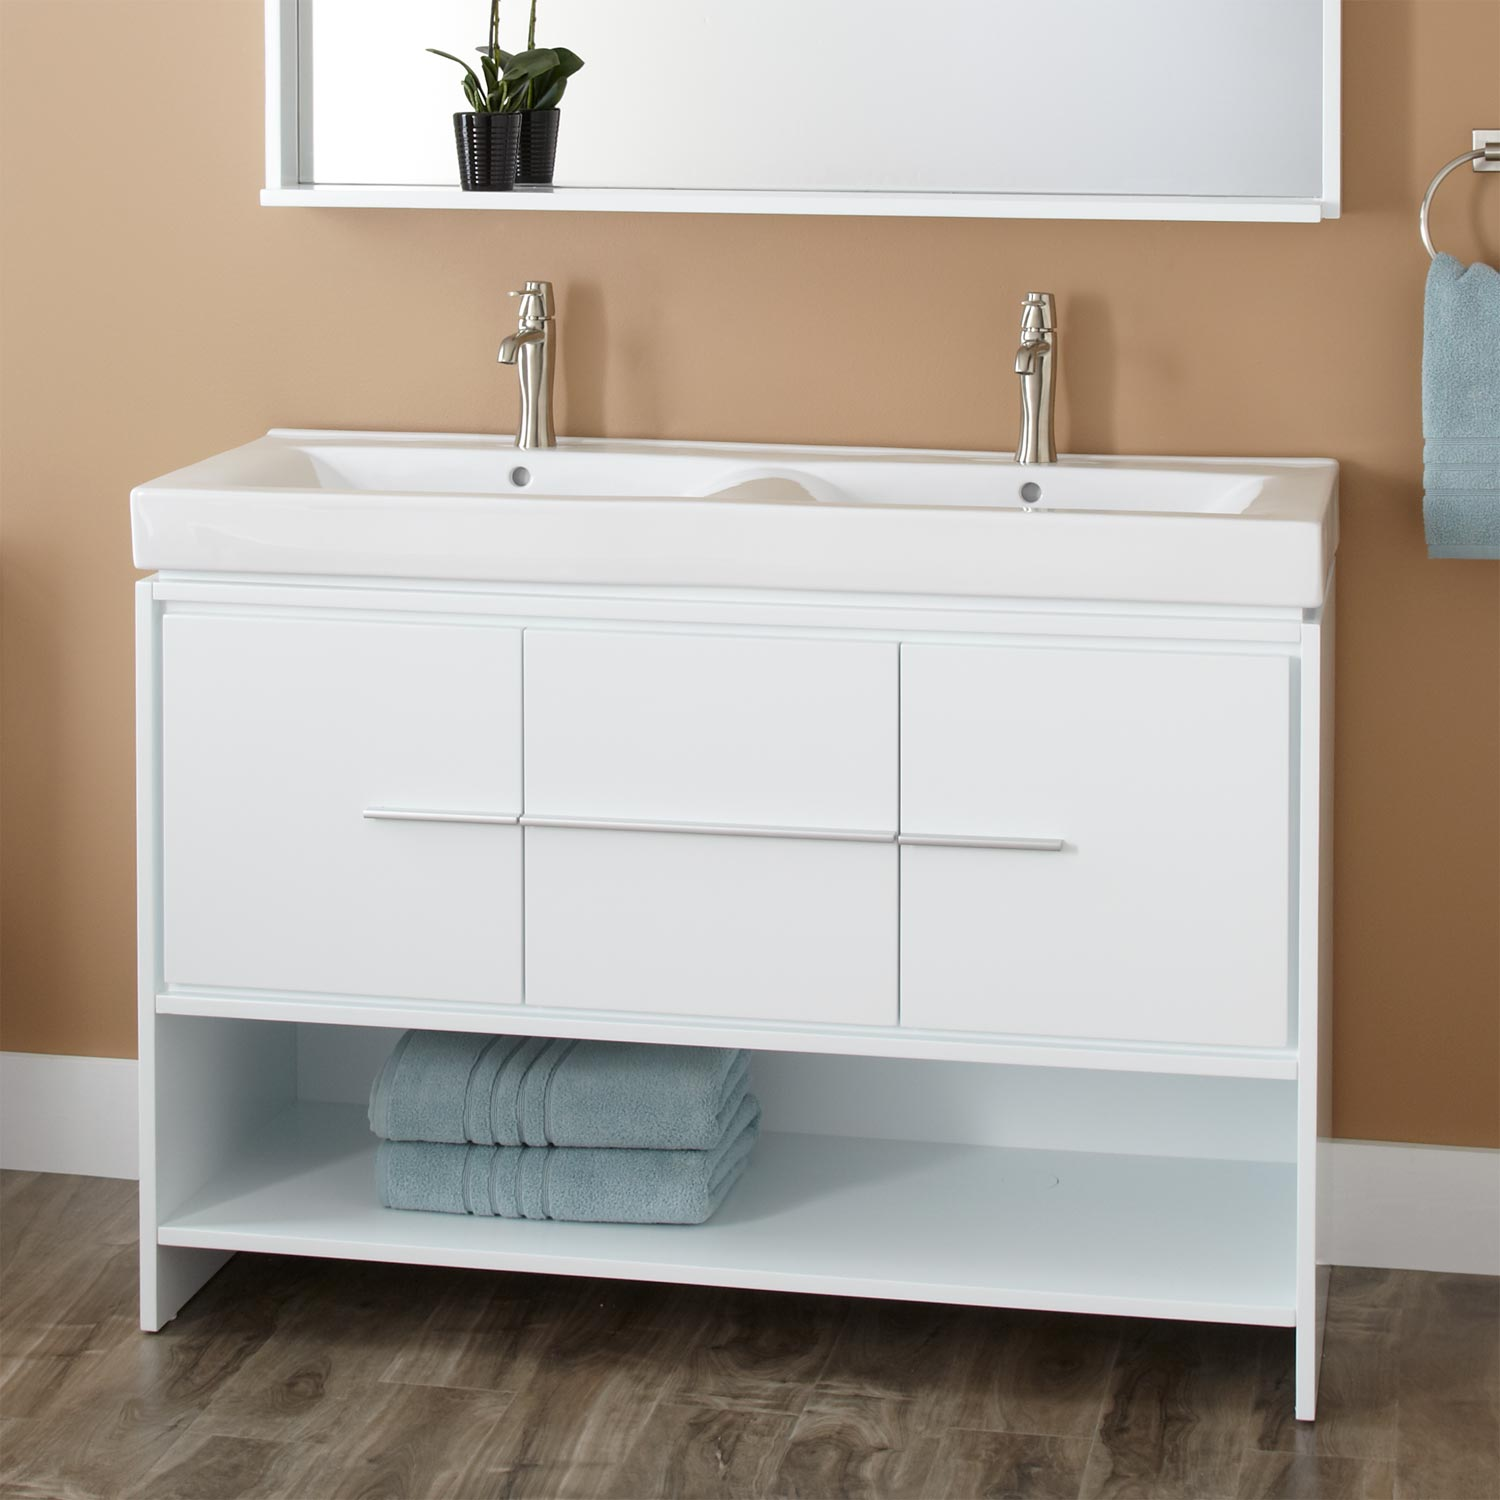 kitchen sink furniture bathroom sink with cabinet homesfeed 8434